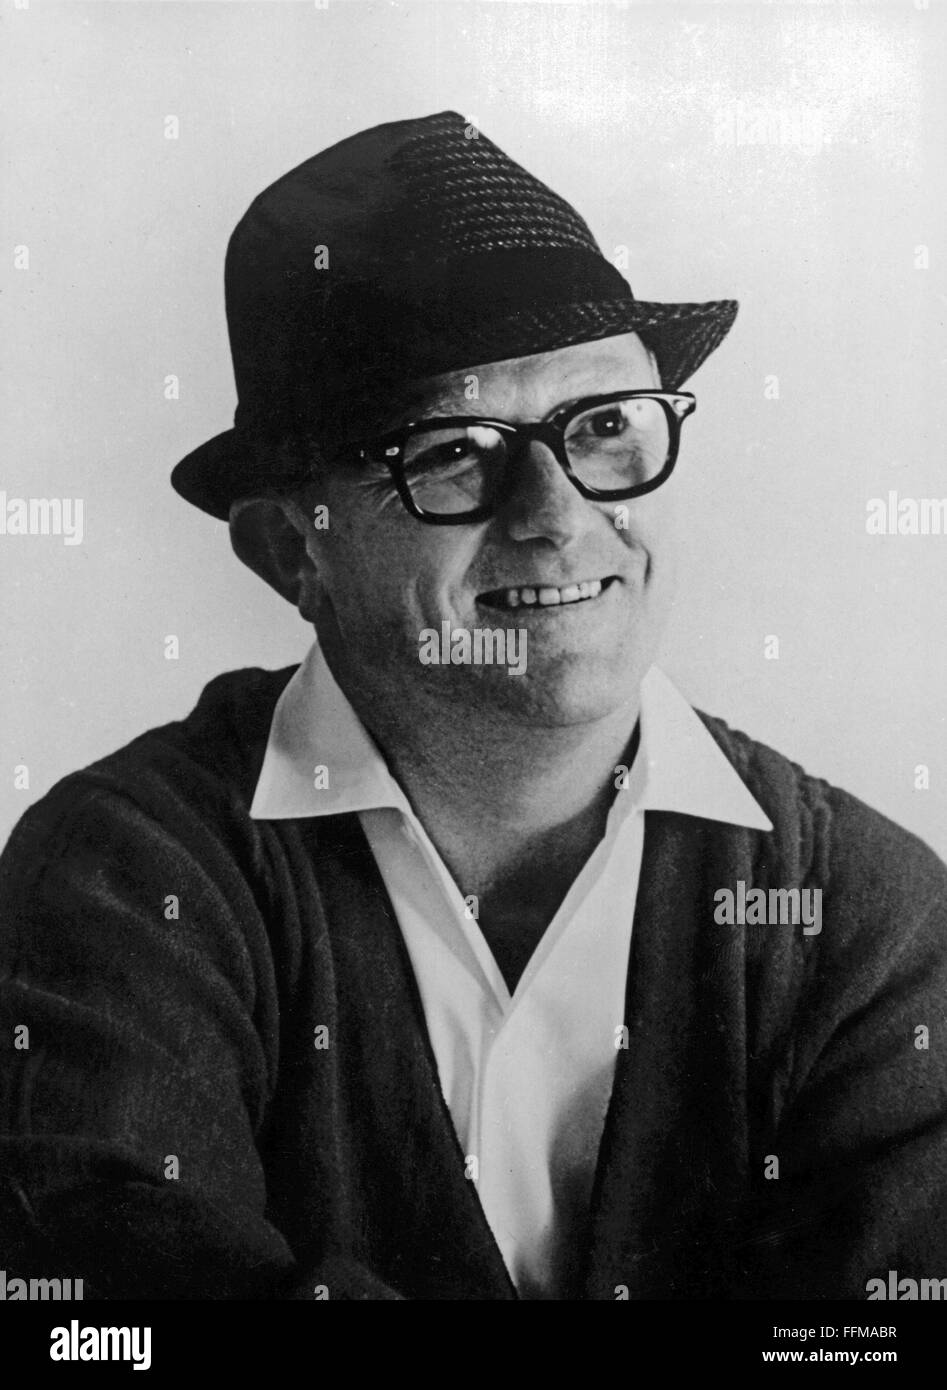 Vaughn, Billy, 12.4.1919 - 26.9.1991, American musician and singer, portrait, 1950s, Additional-Rights-Clearances - Stock Image